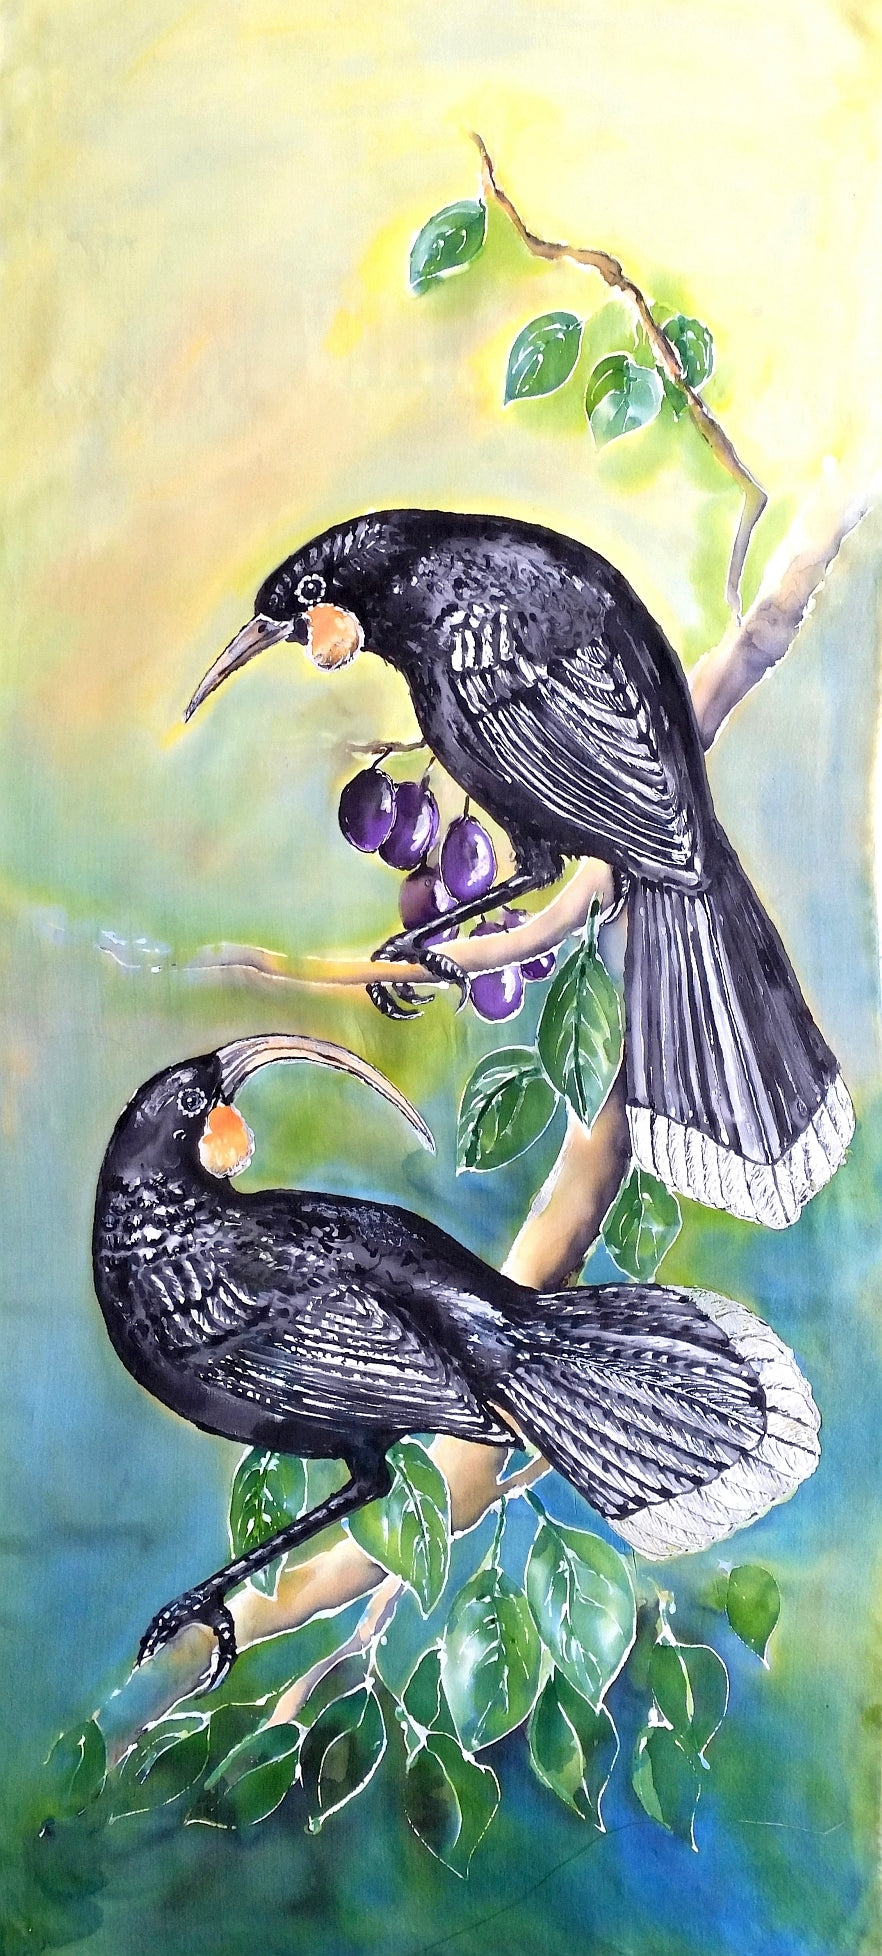 Huia, NZ extinct Bird - Outdoor Garden Art Panel - Satherley Silks NZ